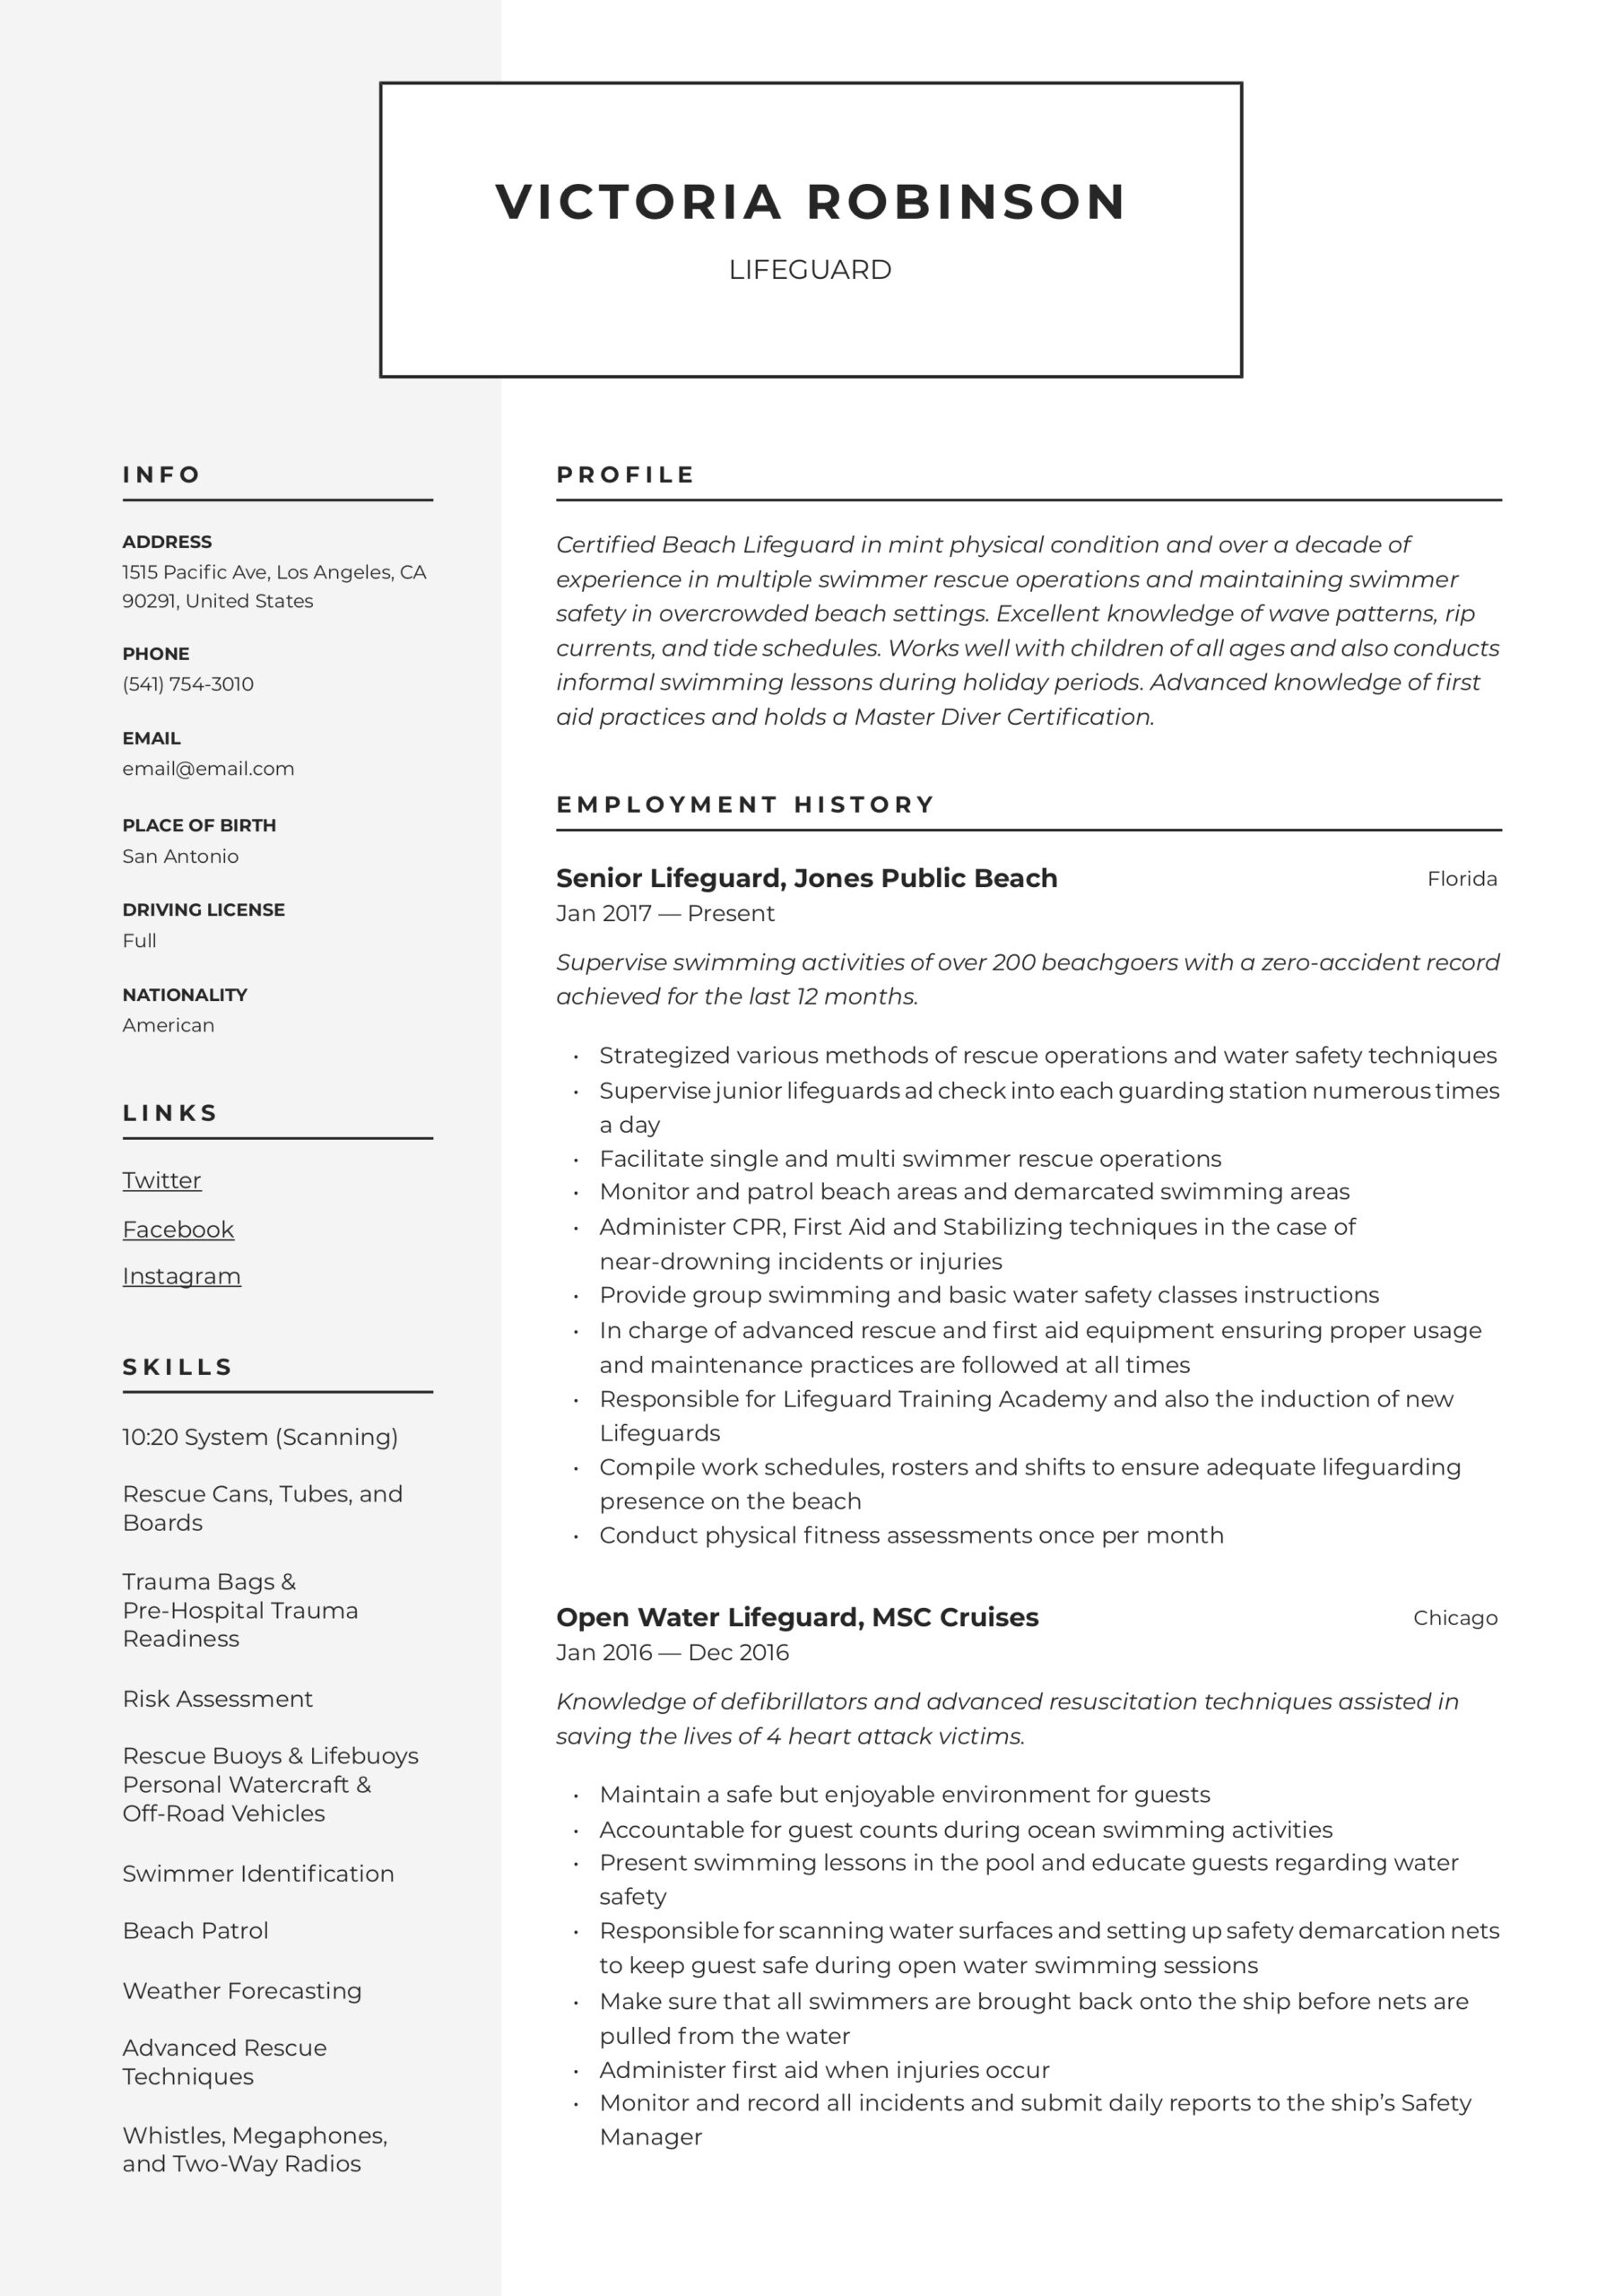 lifeguard resume writing guide templates skills for content reviewer sample score Resume Lifeguard Skills For Resume